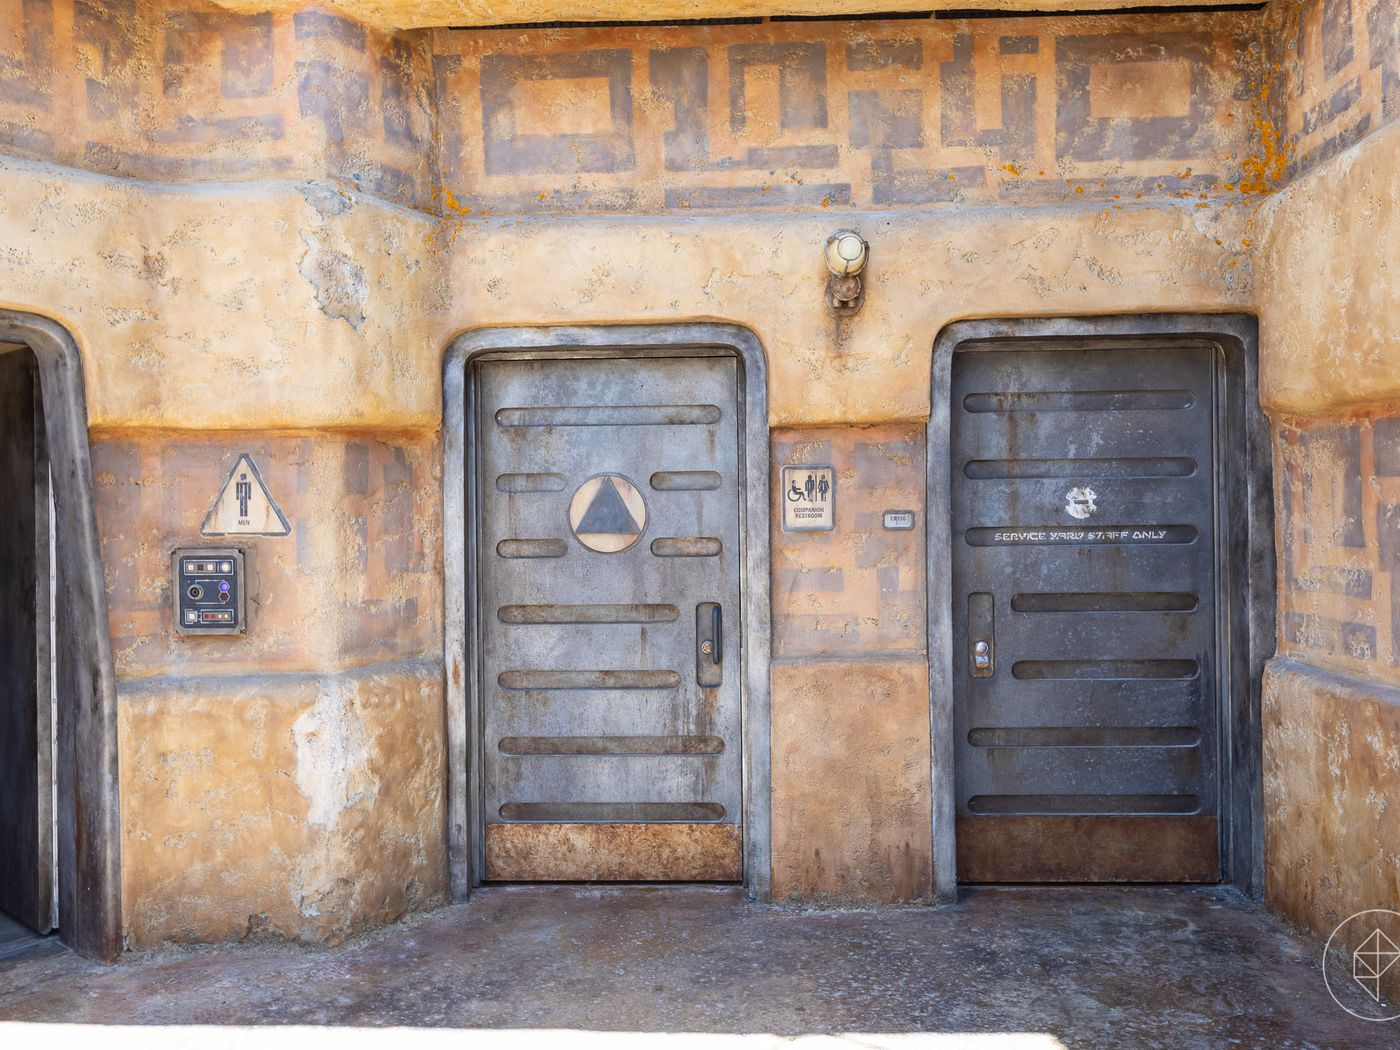 Disneyland S Star Wars Land Bathrooms Where To Find Them What To Know Polygon